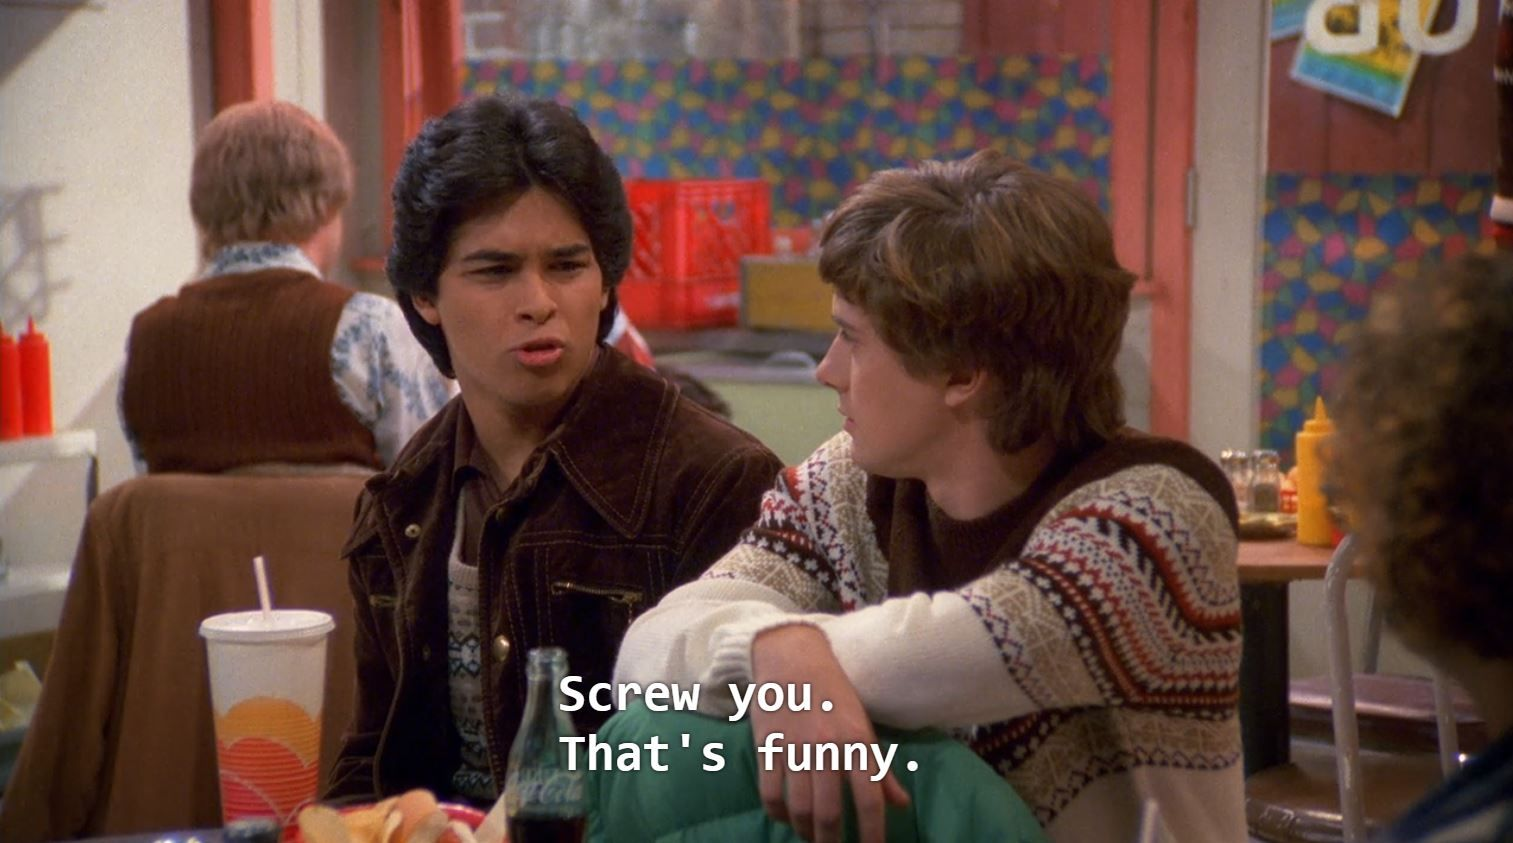 Fez Screw You That S Funny That 70s Show That 70s Show Quotes That 70s Show Fez That 70s Show